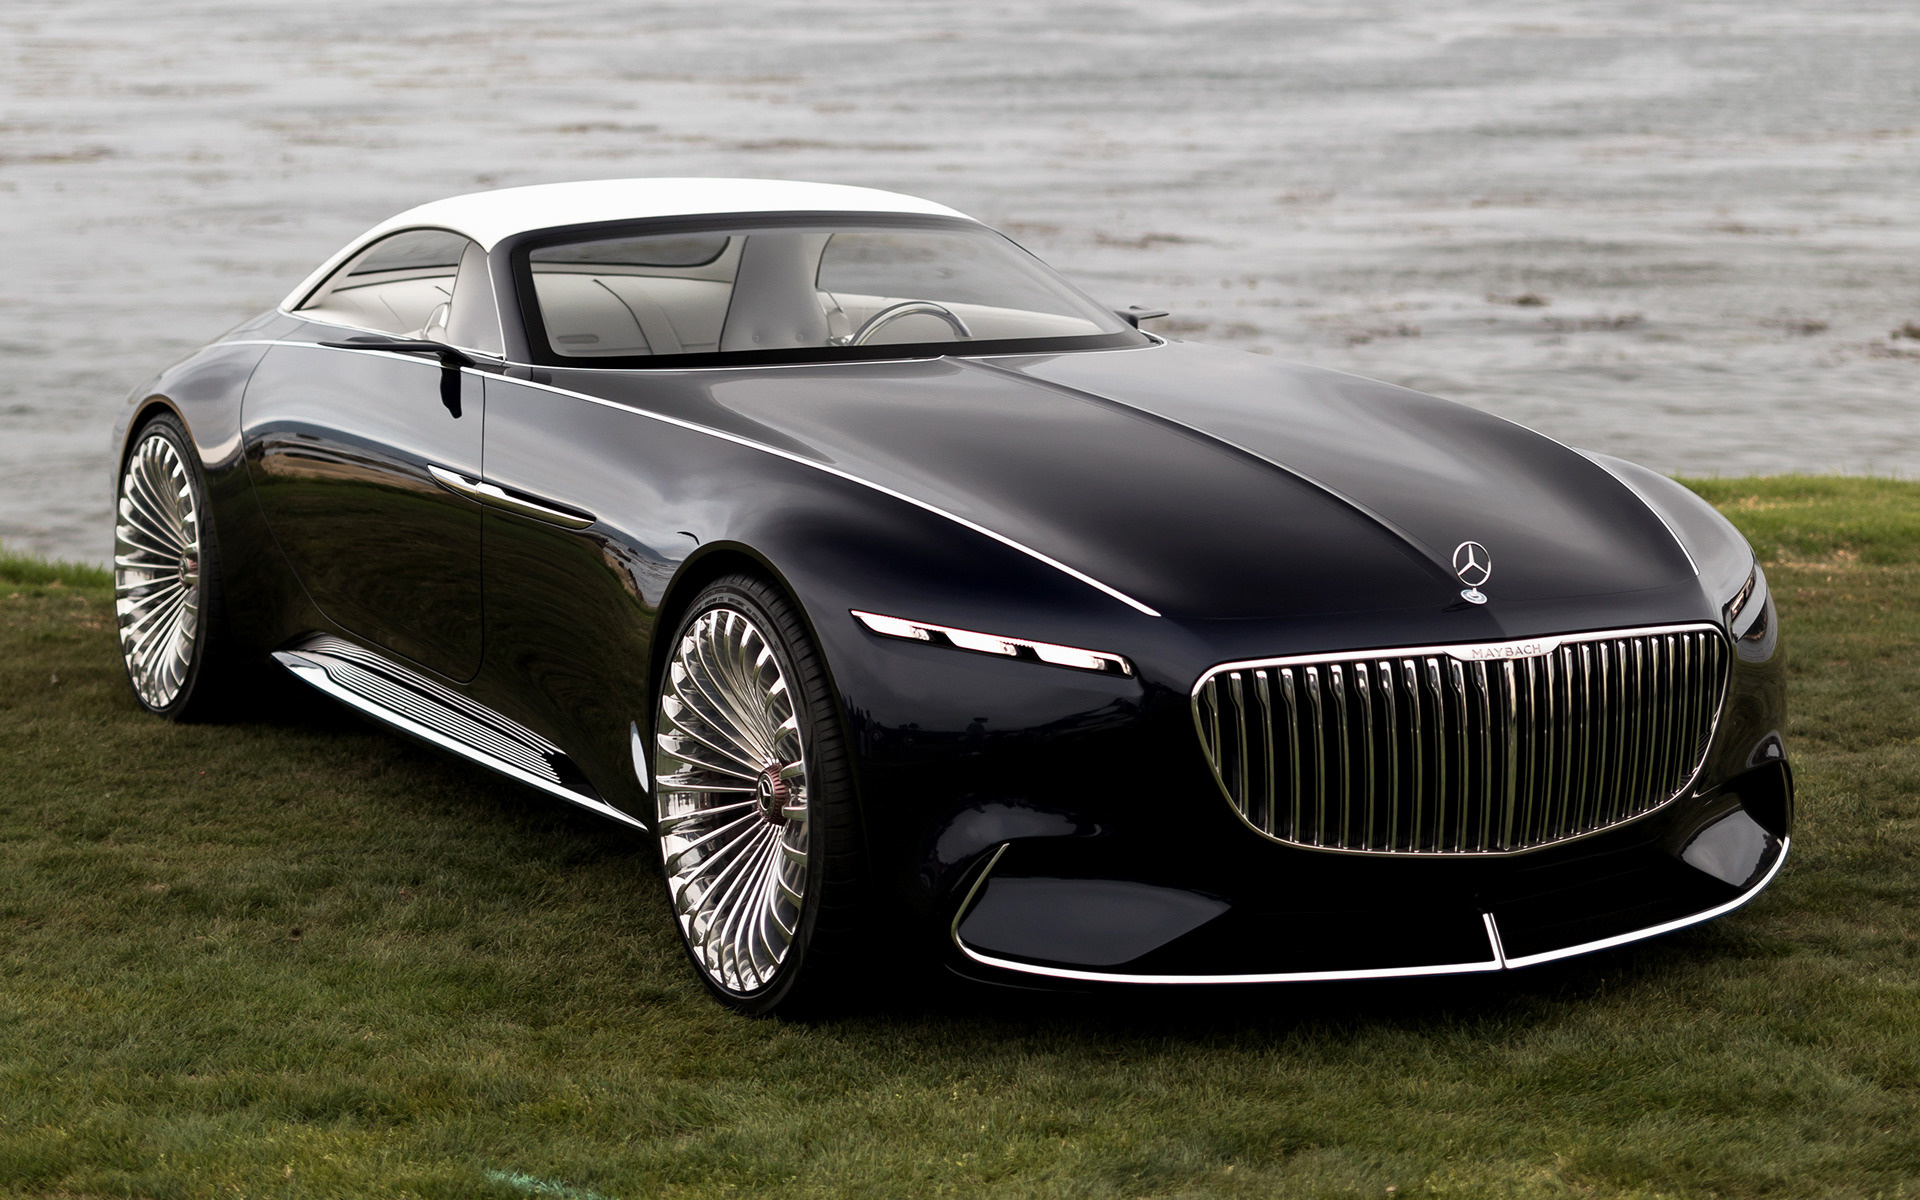 2017 vision mercedes maybach 6 cabriolet wallpapers and hd images car pixel. Black Bedroom Furniture Sets. Home Design Ideas